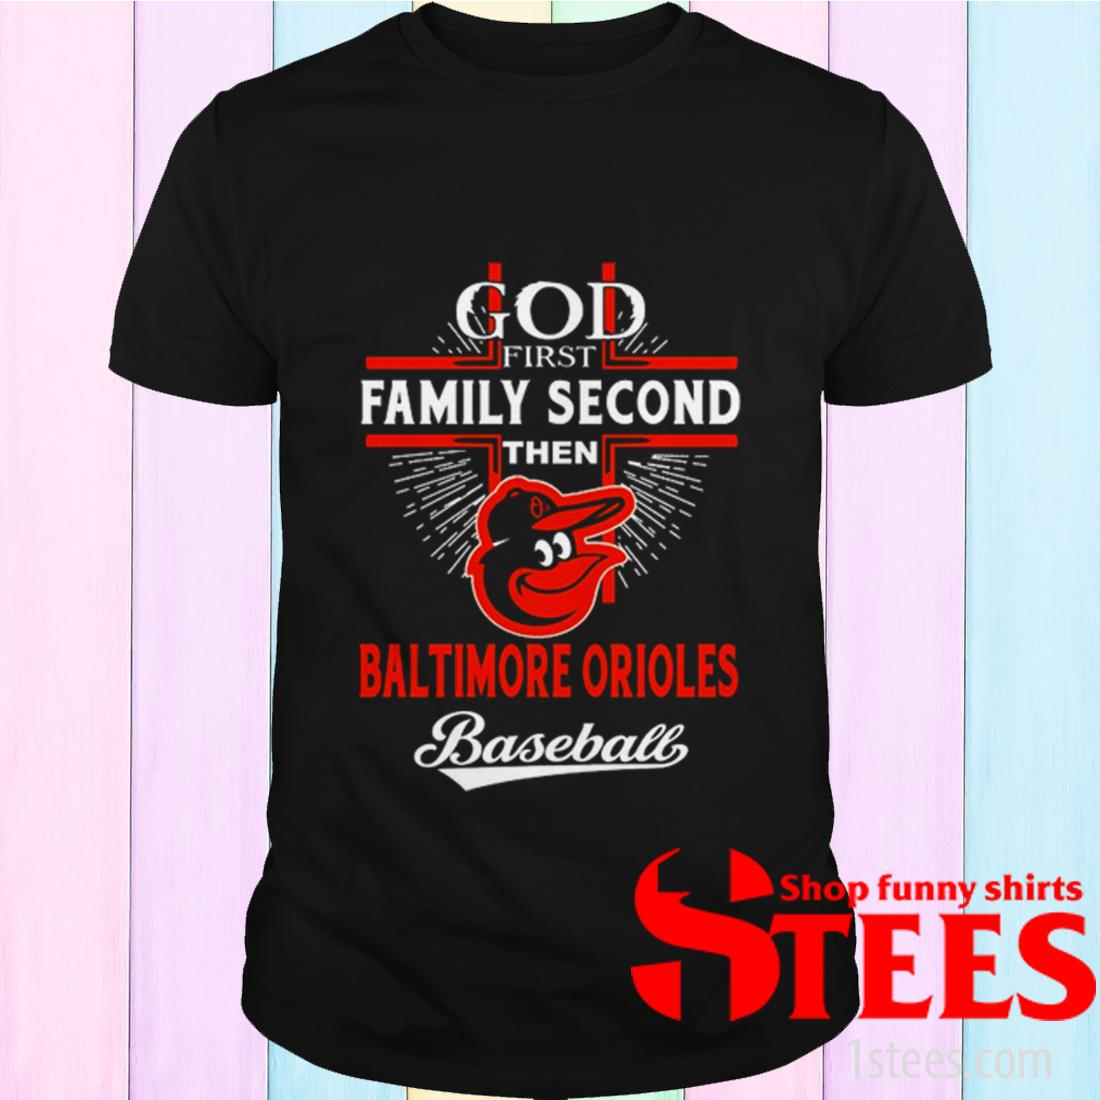 God First Family Second Then Baltimore Orioles Baseball T-Shirt